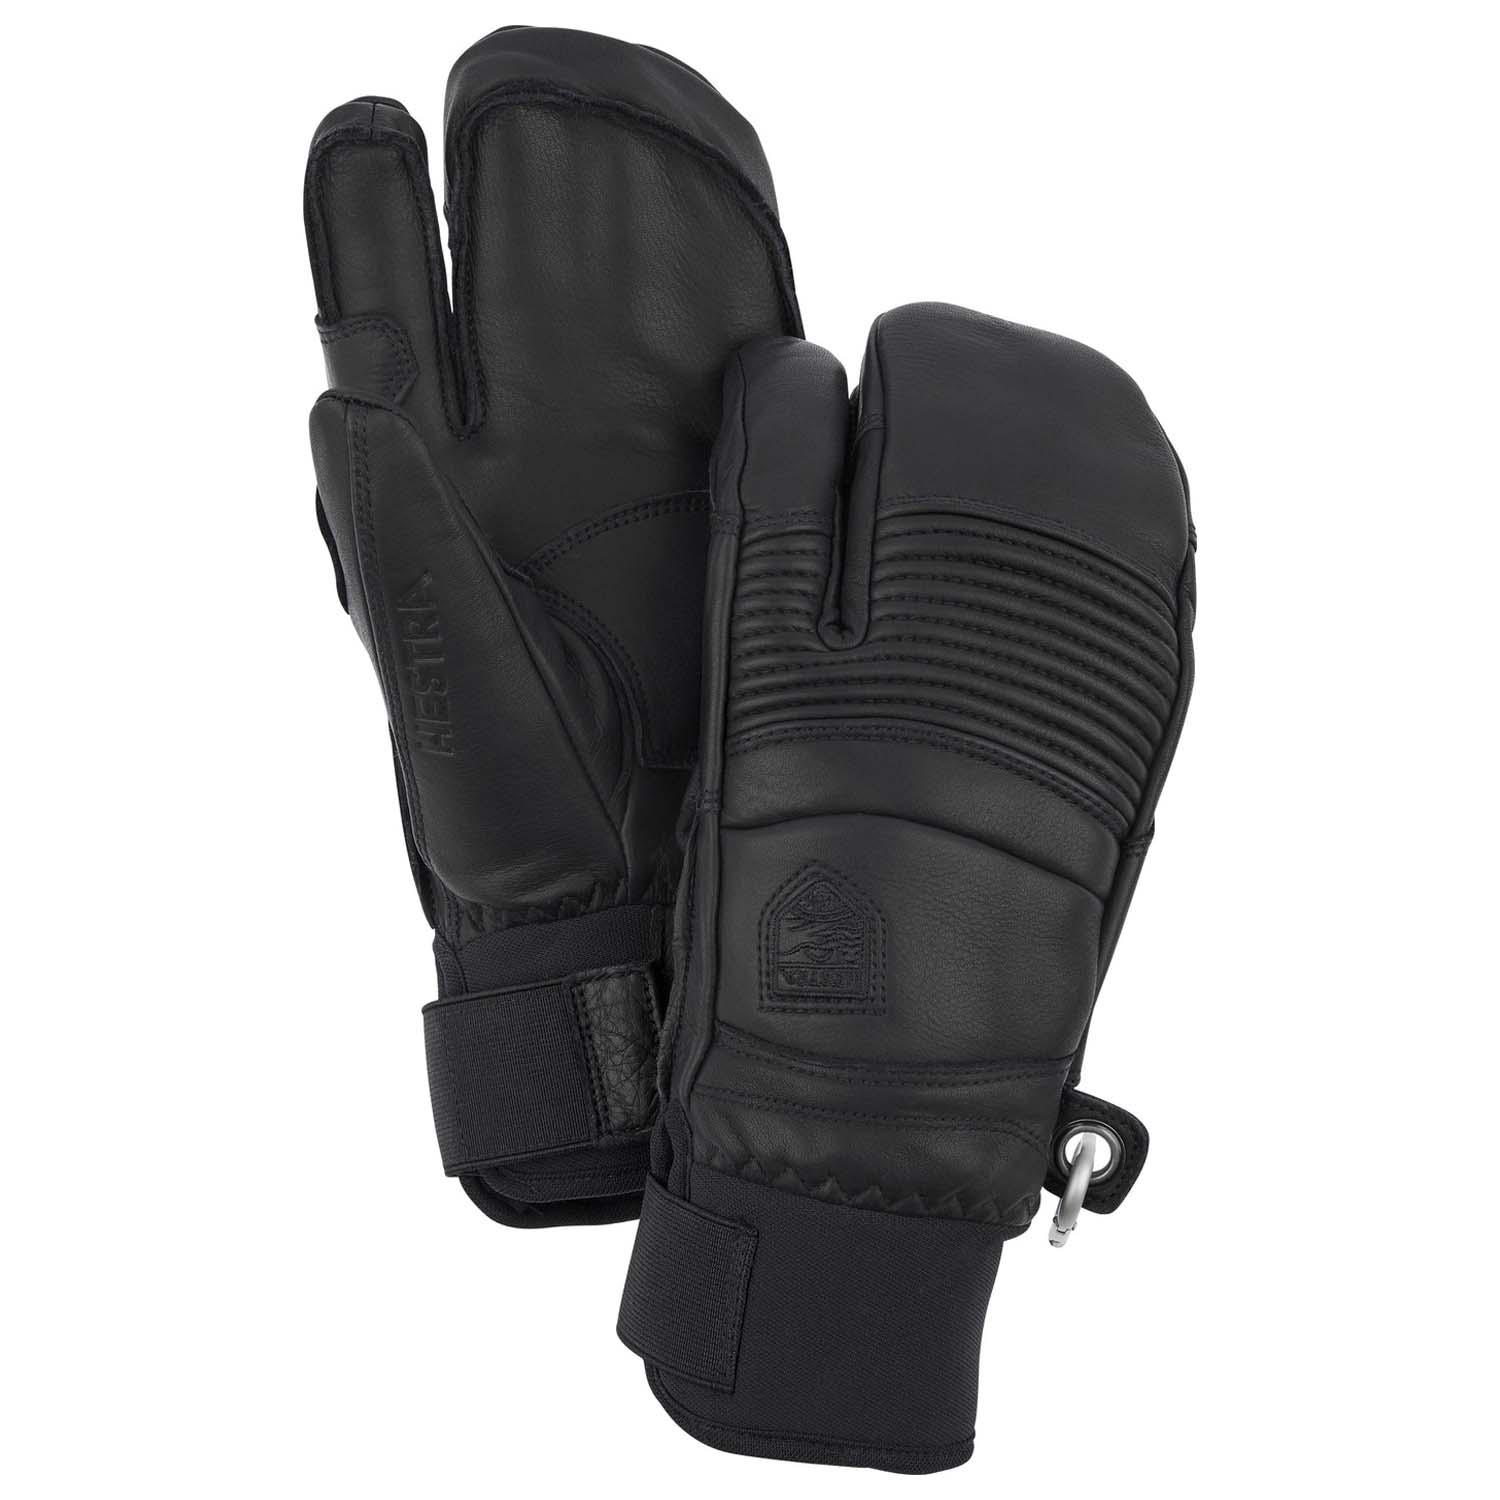 Hestra Leather Fall Line 3-Finger Glove Black 2020